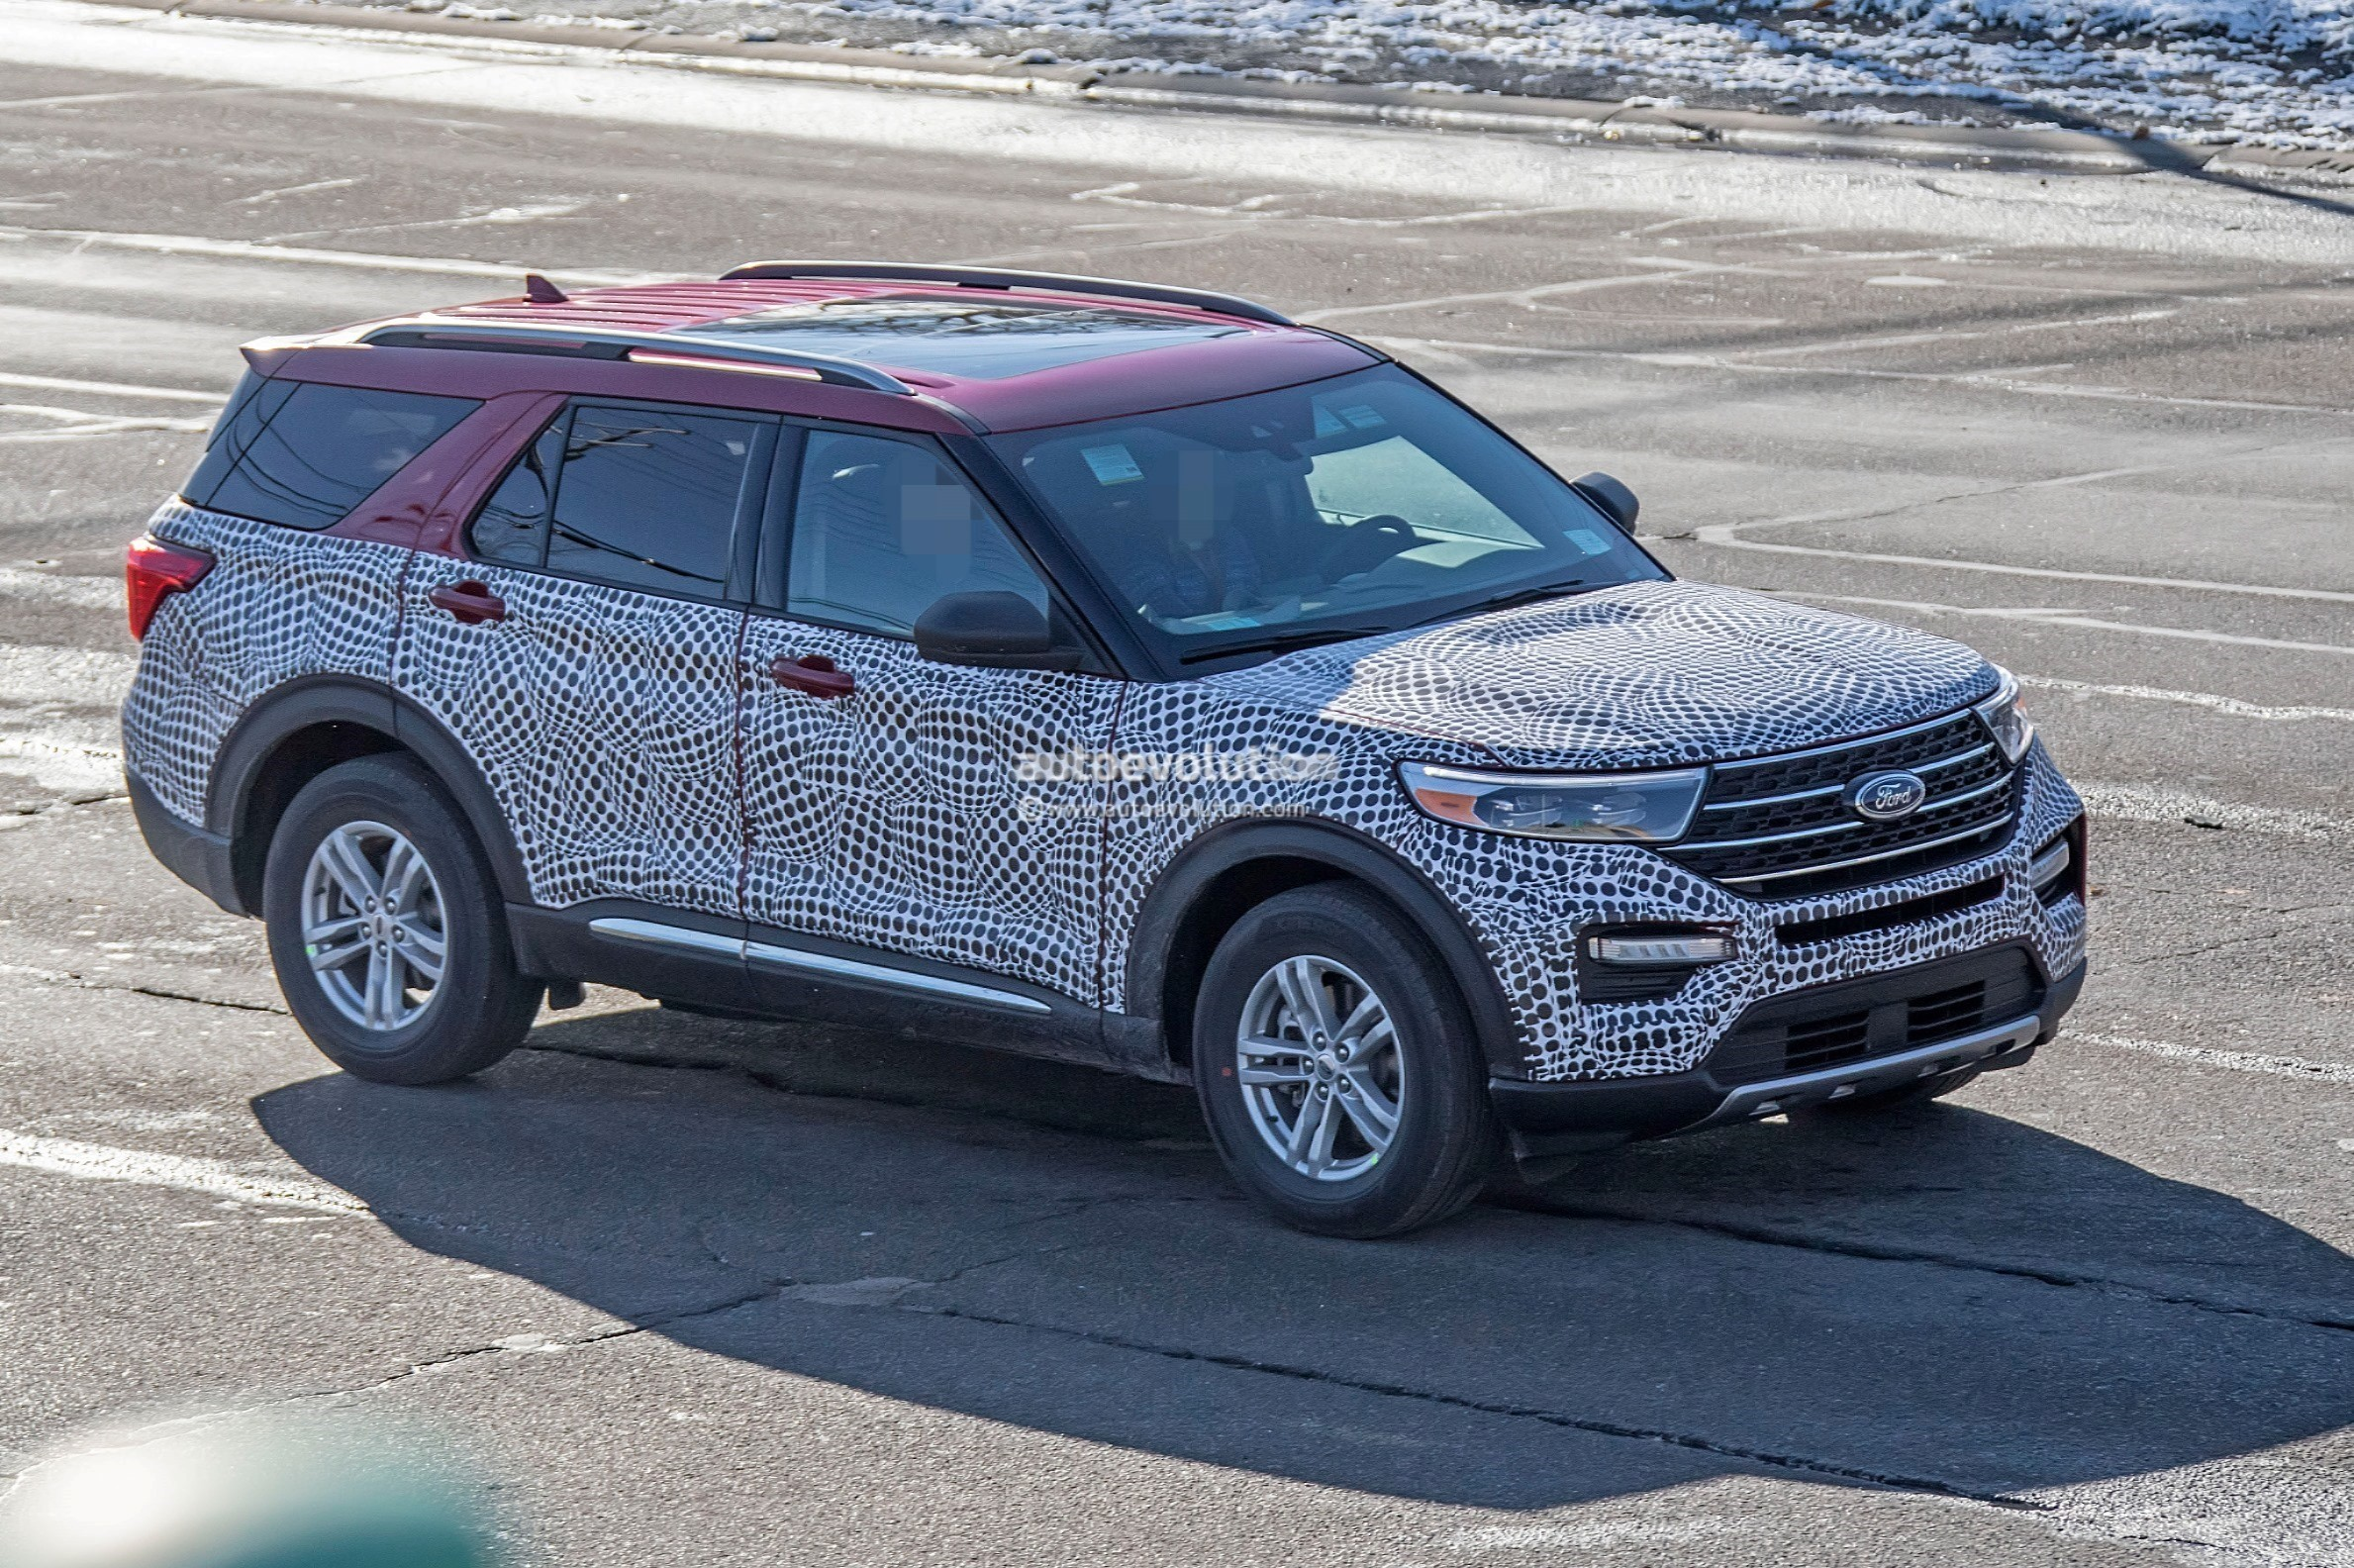 2020 Ford Explorer Previewed By All-New Police Interceptor Utility - autoevolution